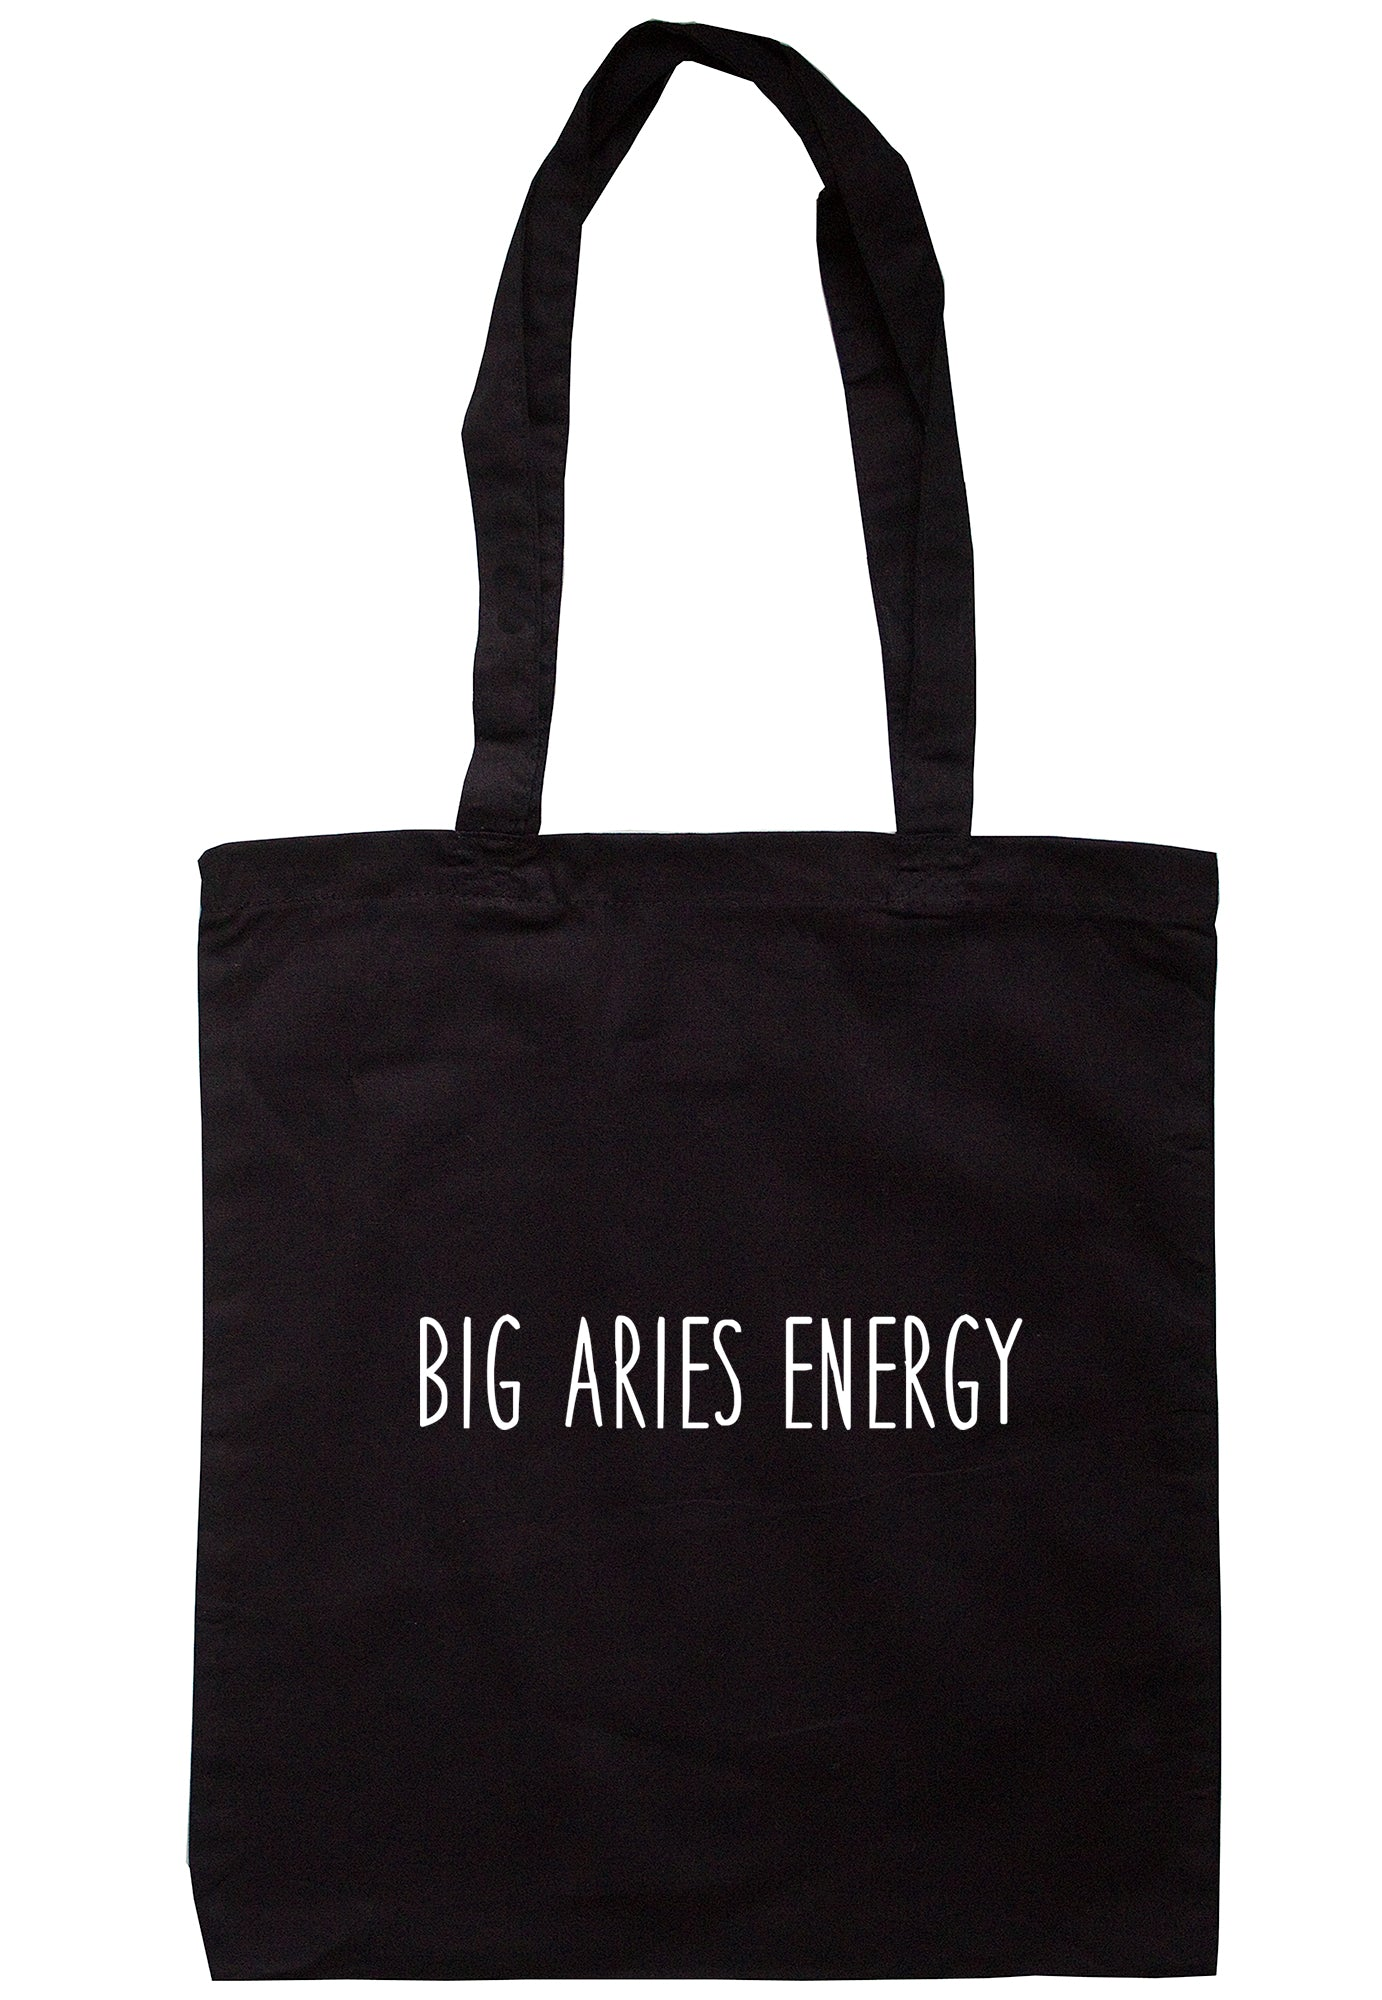 Big Aries Energy Tote Bag S1011